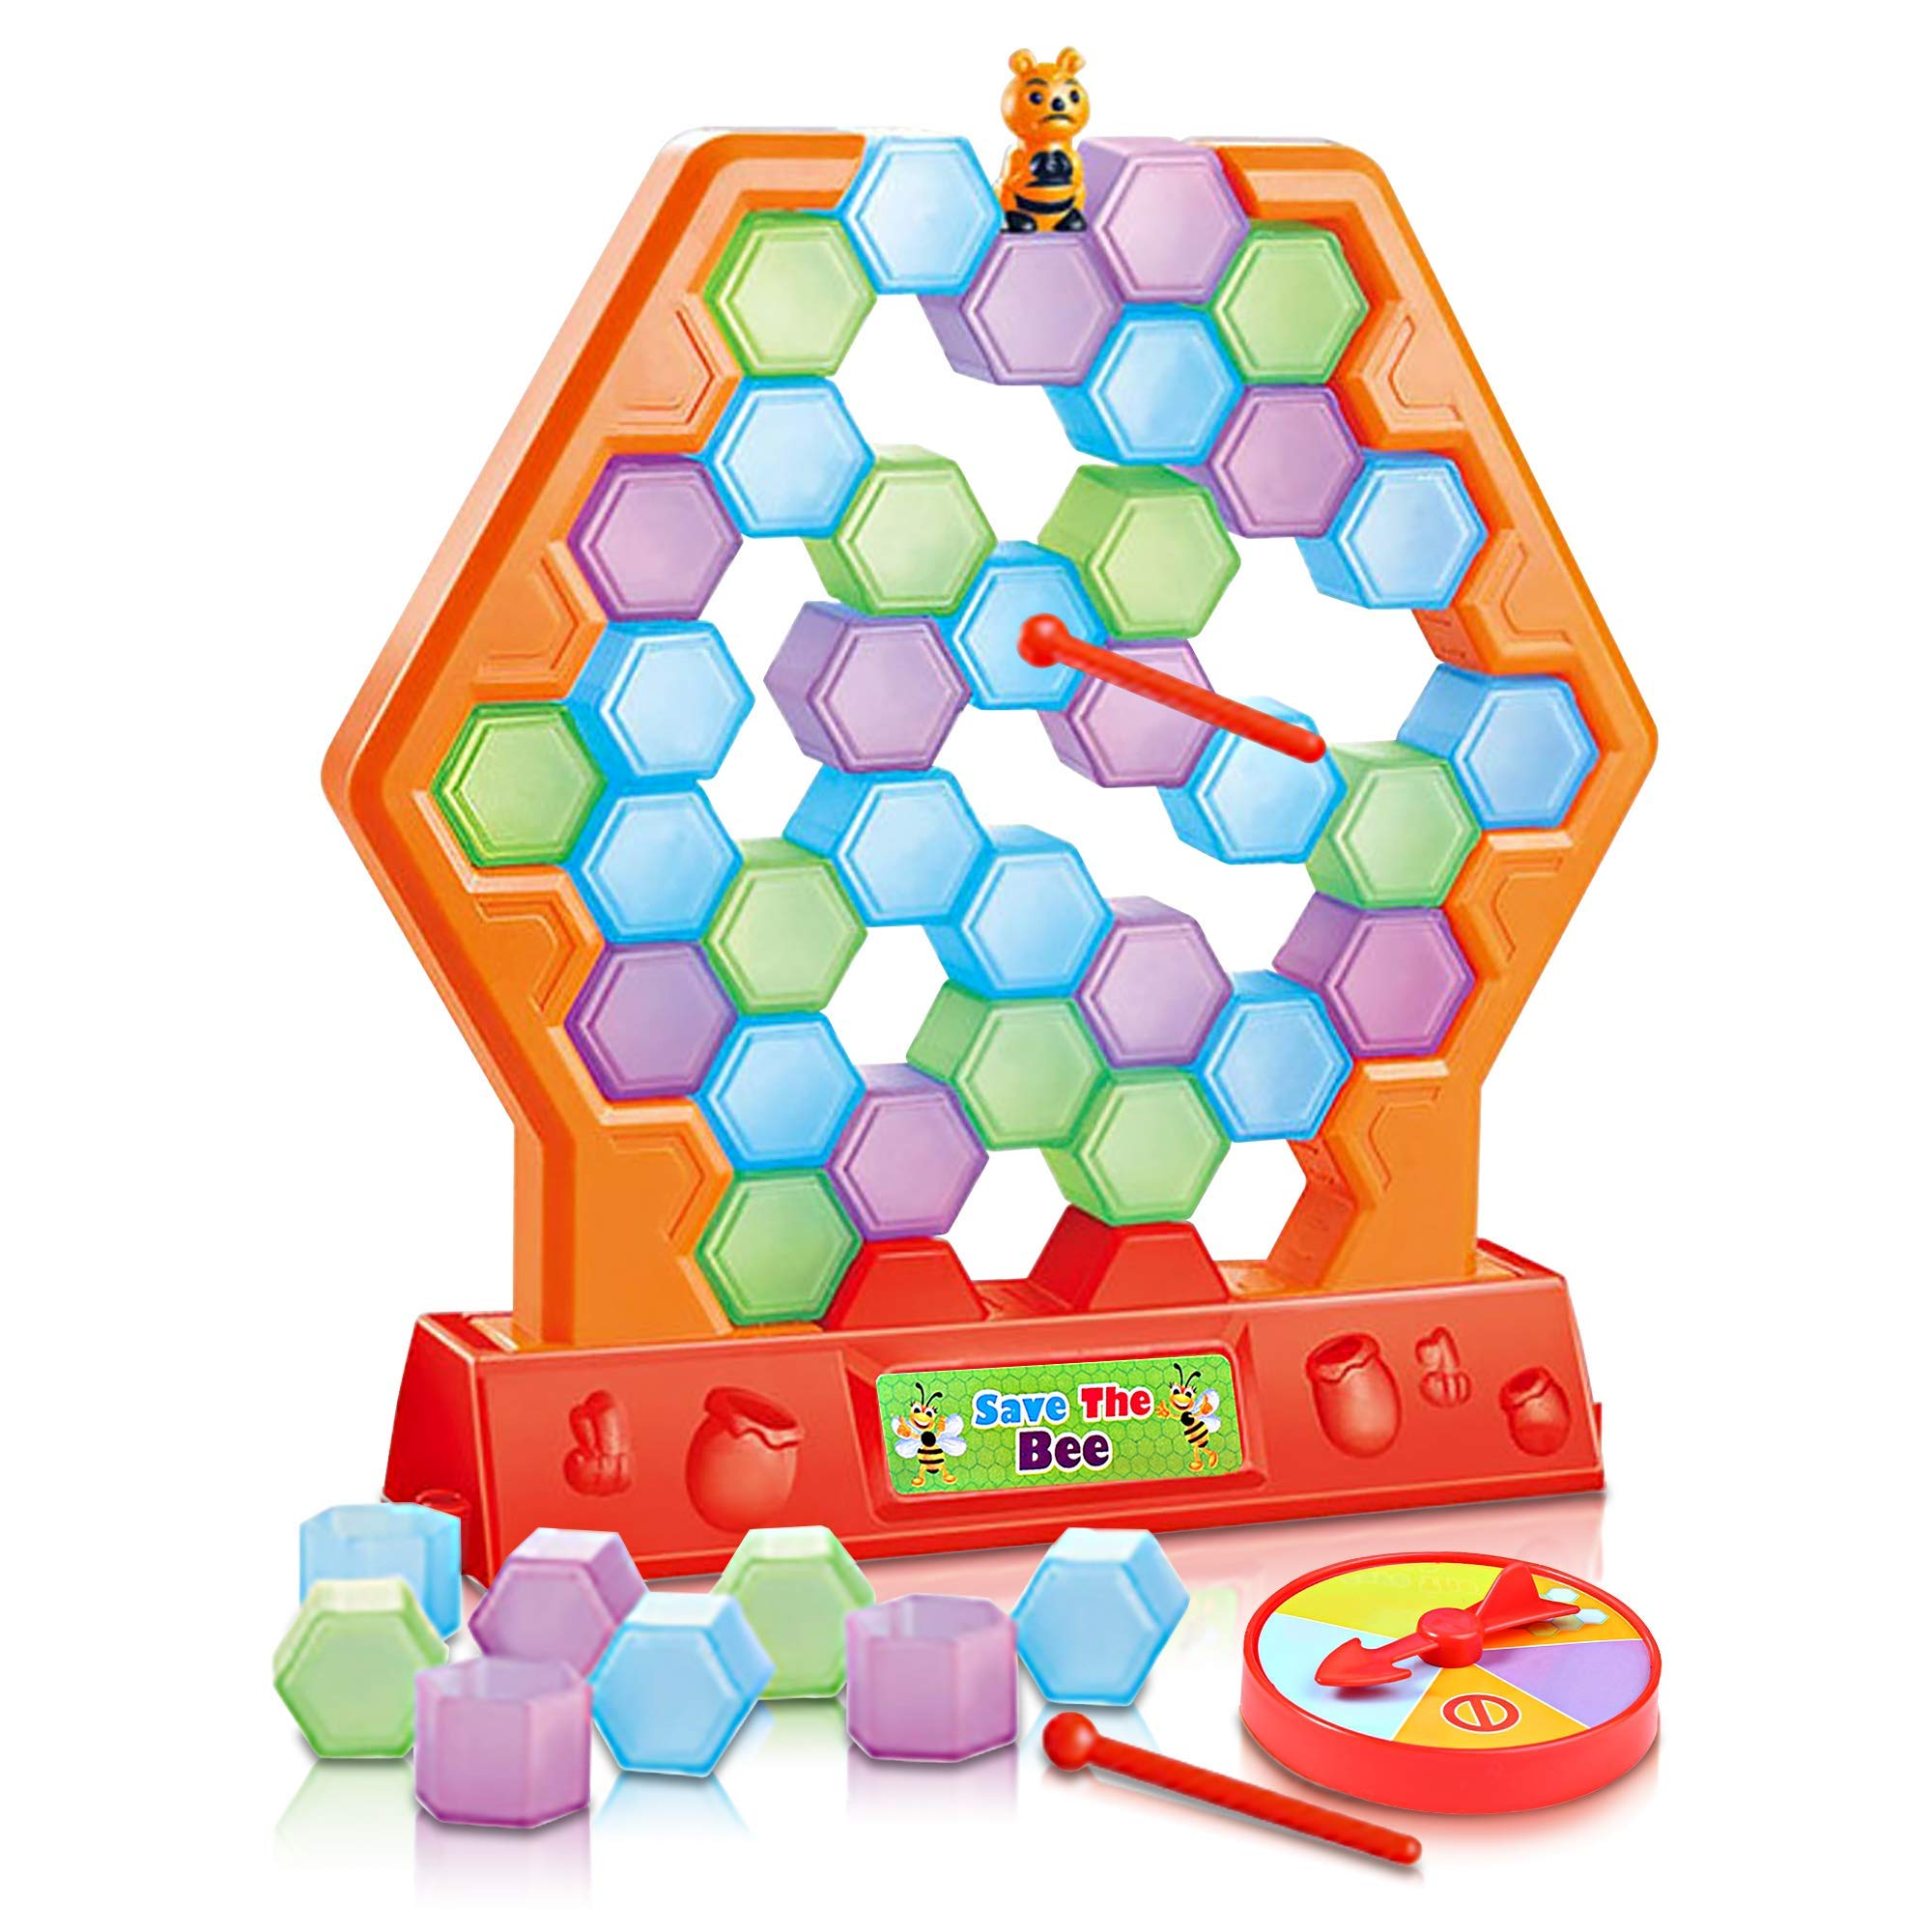 Gamie Save The Bee Game for Kids - Interactive Stacking and Tumbling Game - Educational Learning Toy - Great for Boys and Girls - Fun Indoor Activity for Children by Gamie